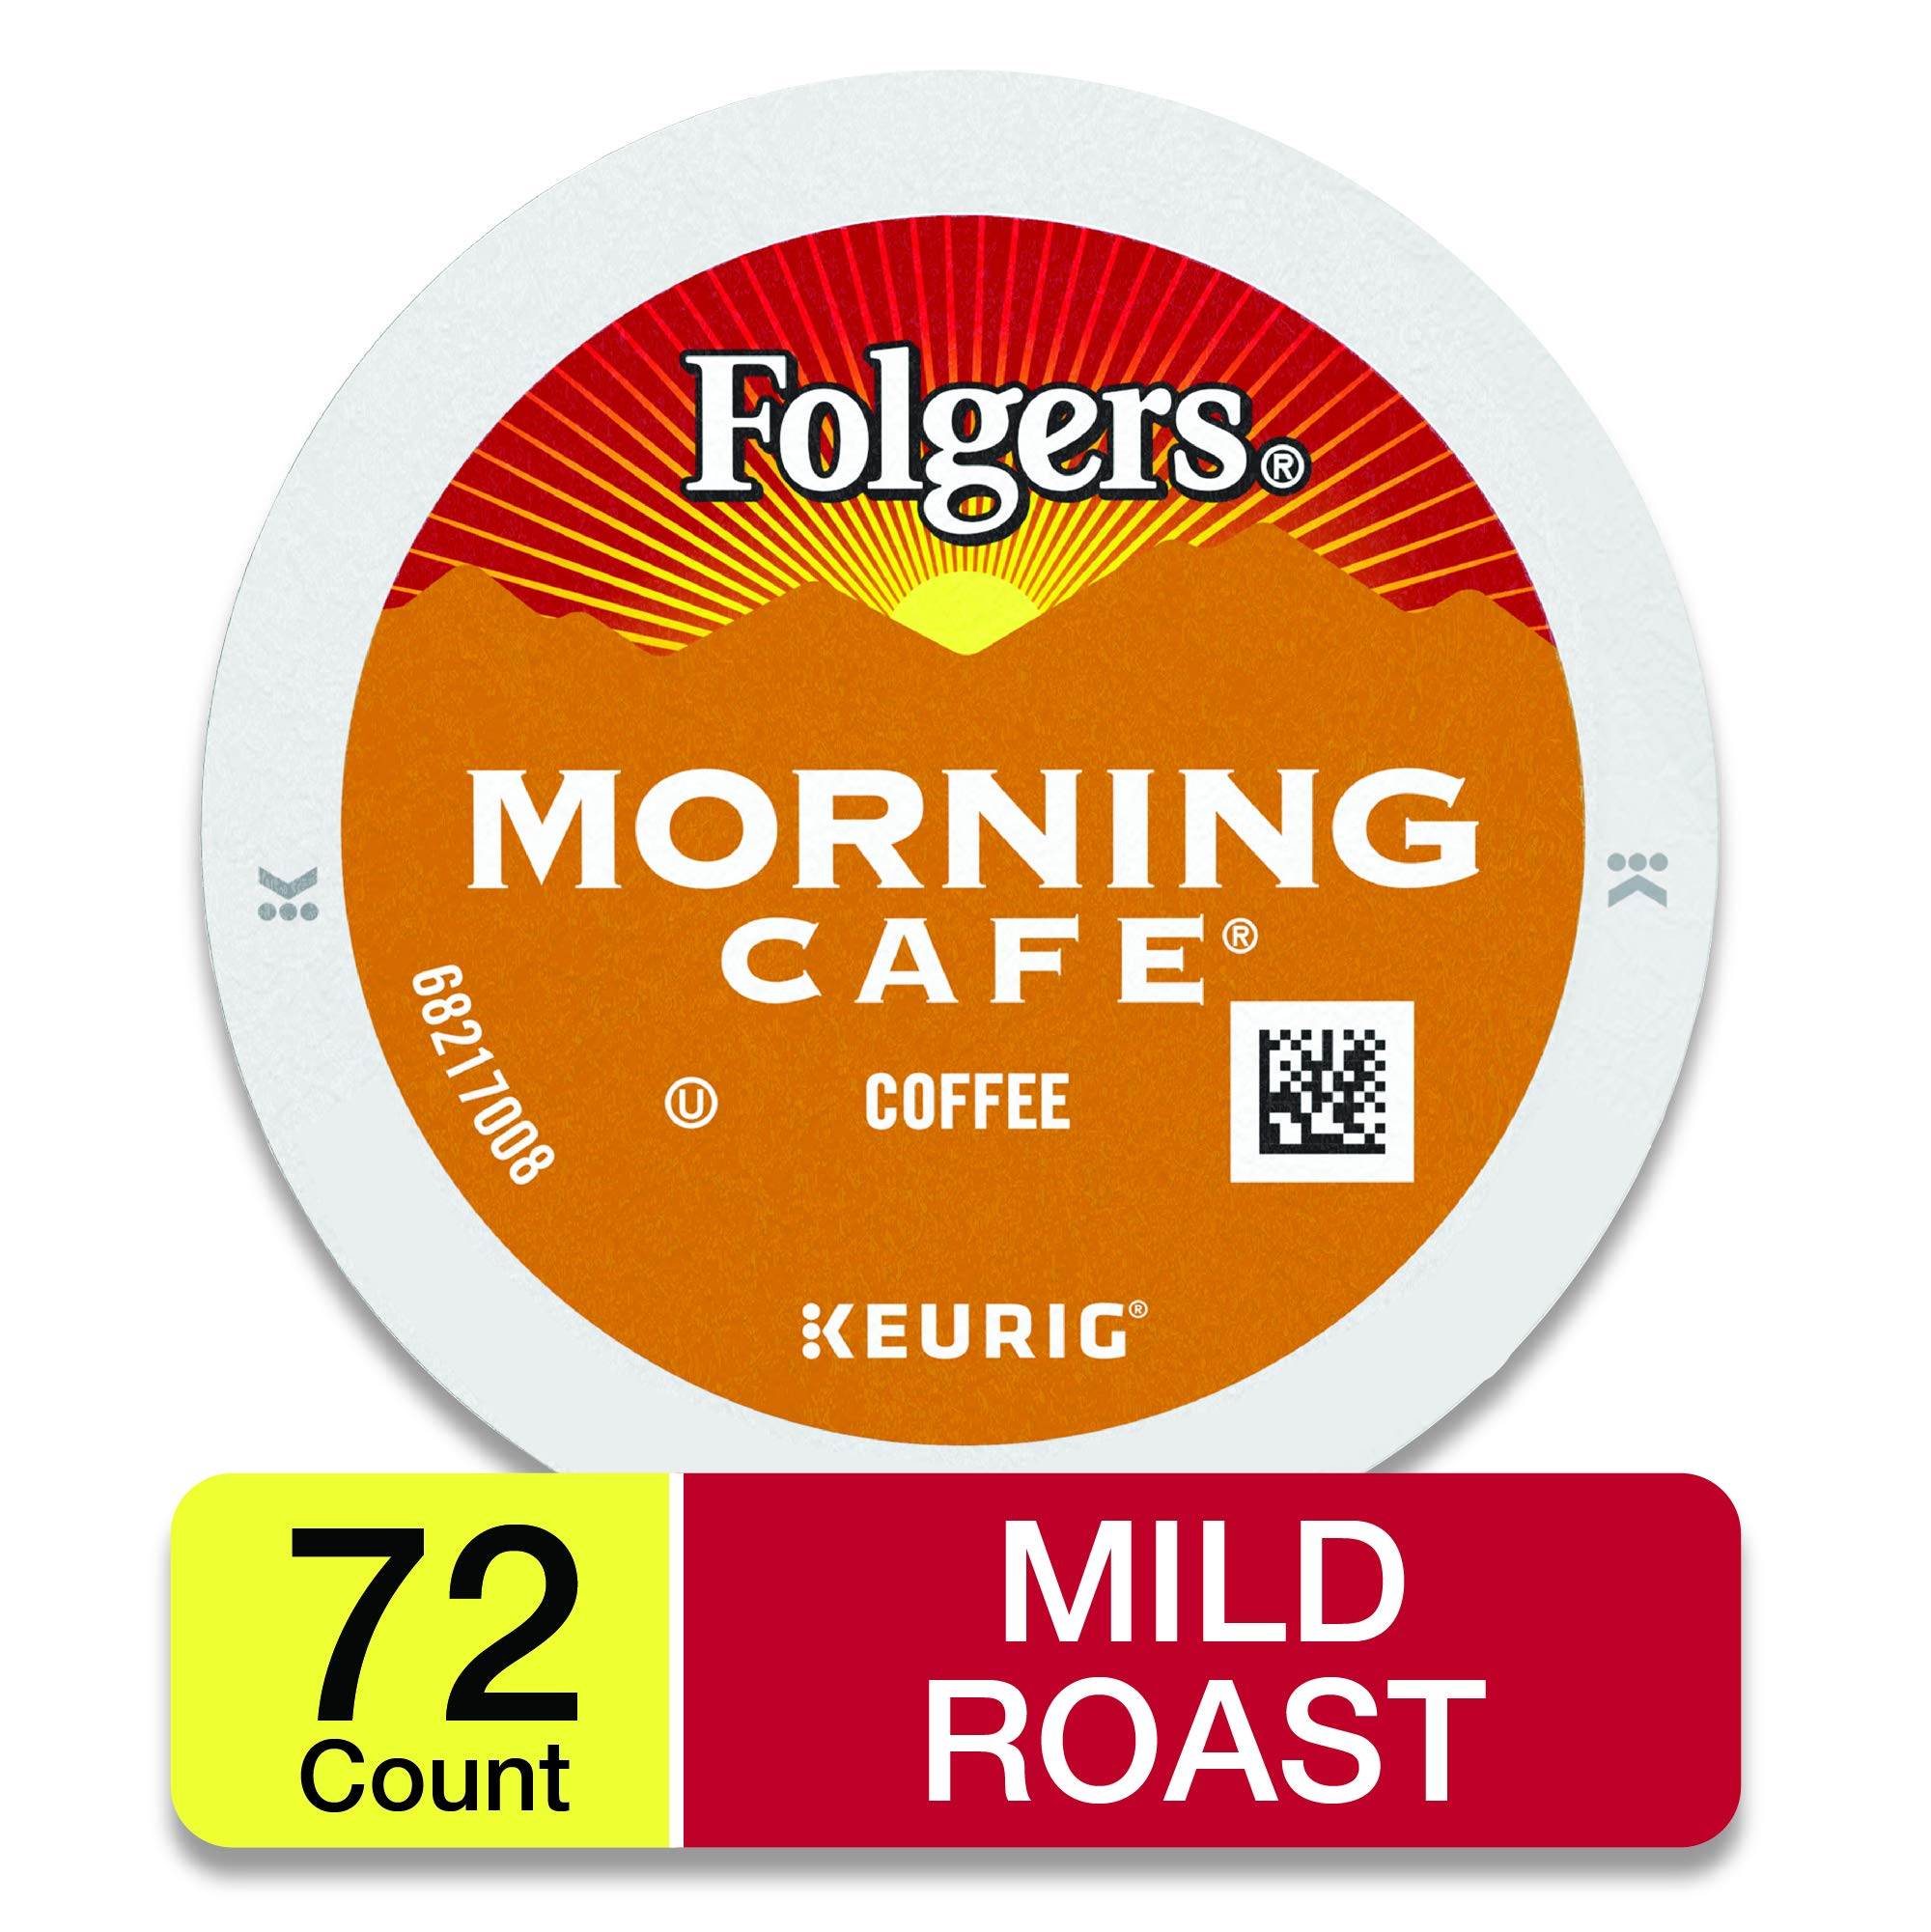 Folgers Morning Cafe, Mild Roast Coffee, K-Cup Pods for Keurig K-Cup Brewers, 12-Count (Pack of 6), Packaging May Vary by Folgers